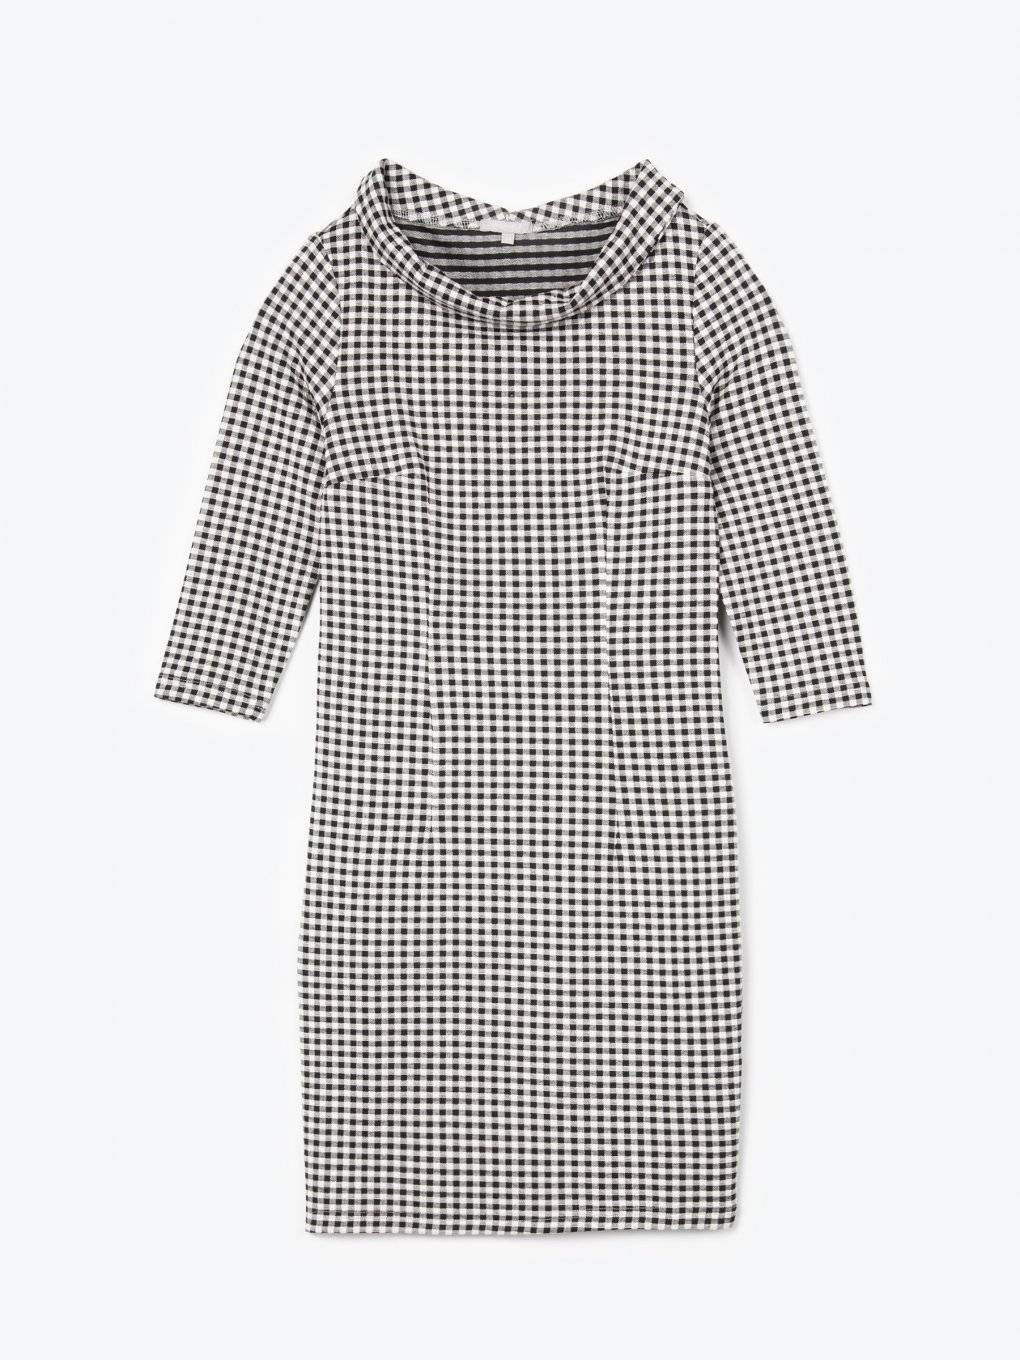 Gingham dress with wide collar